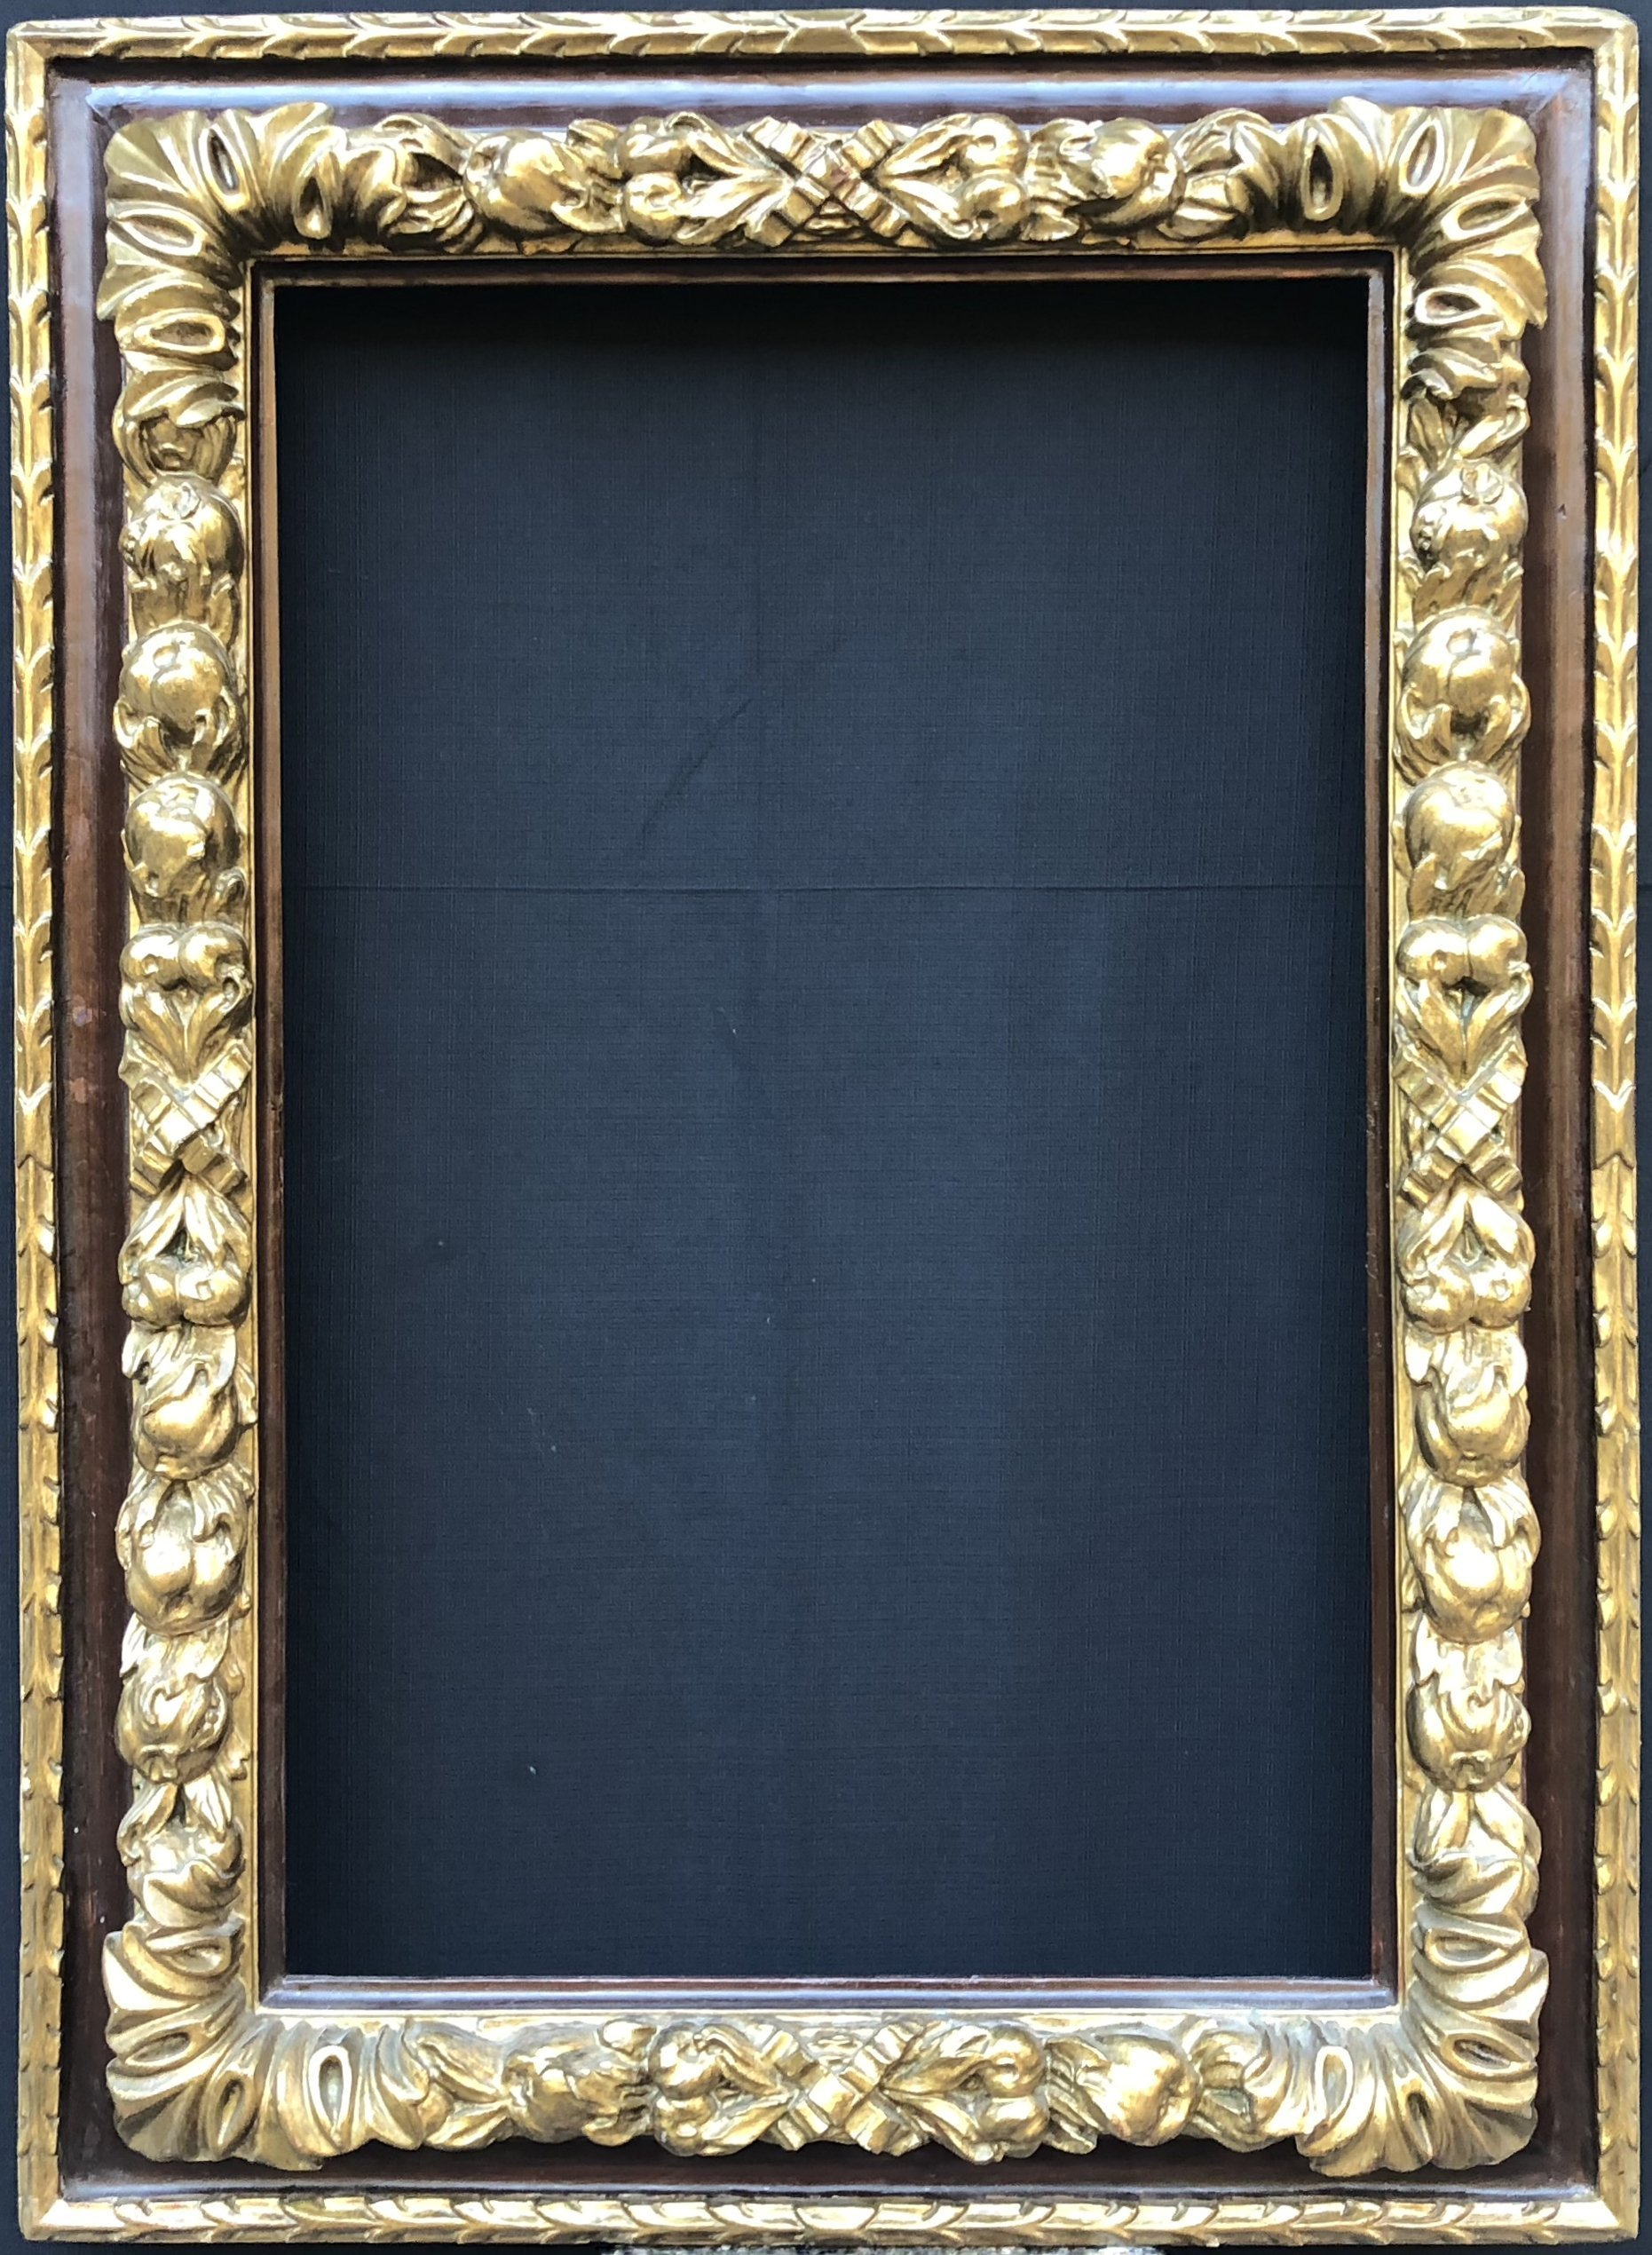 Renaissance frame - Contact for price